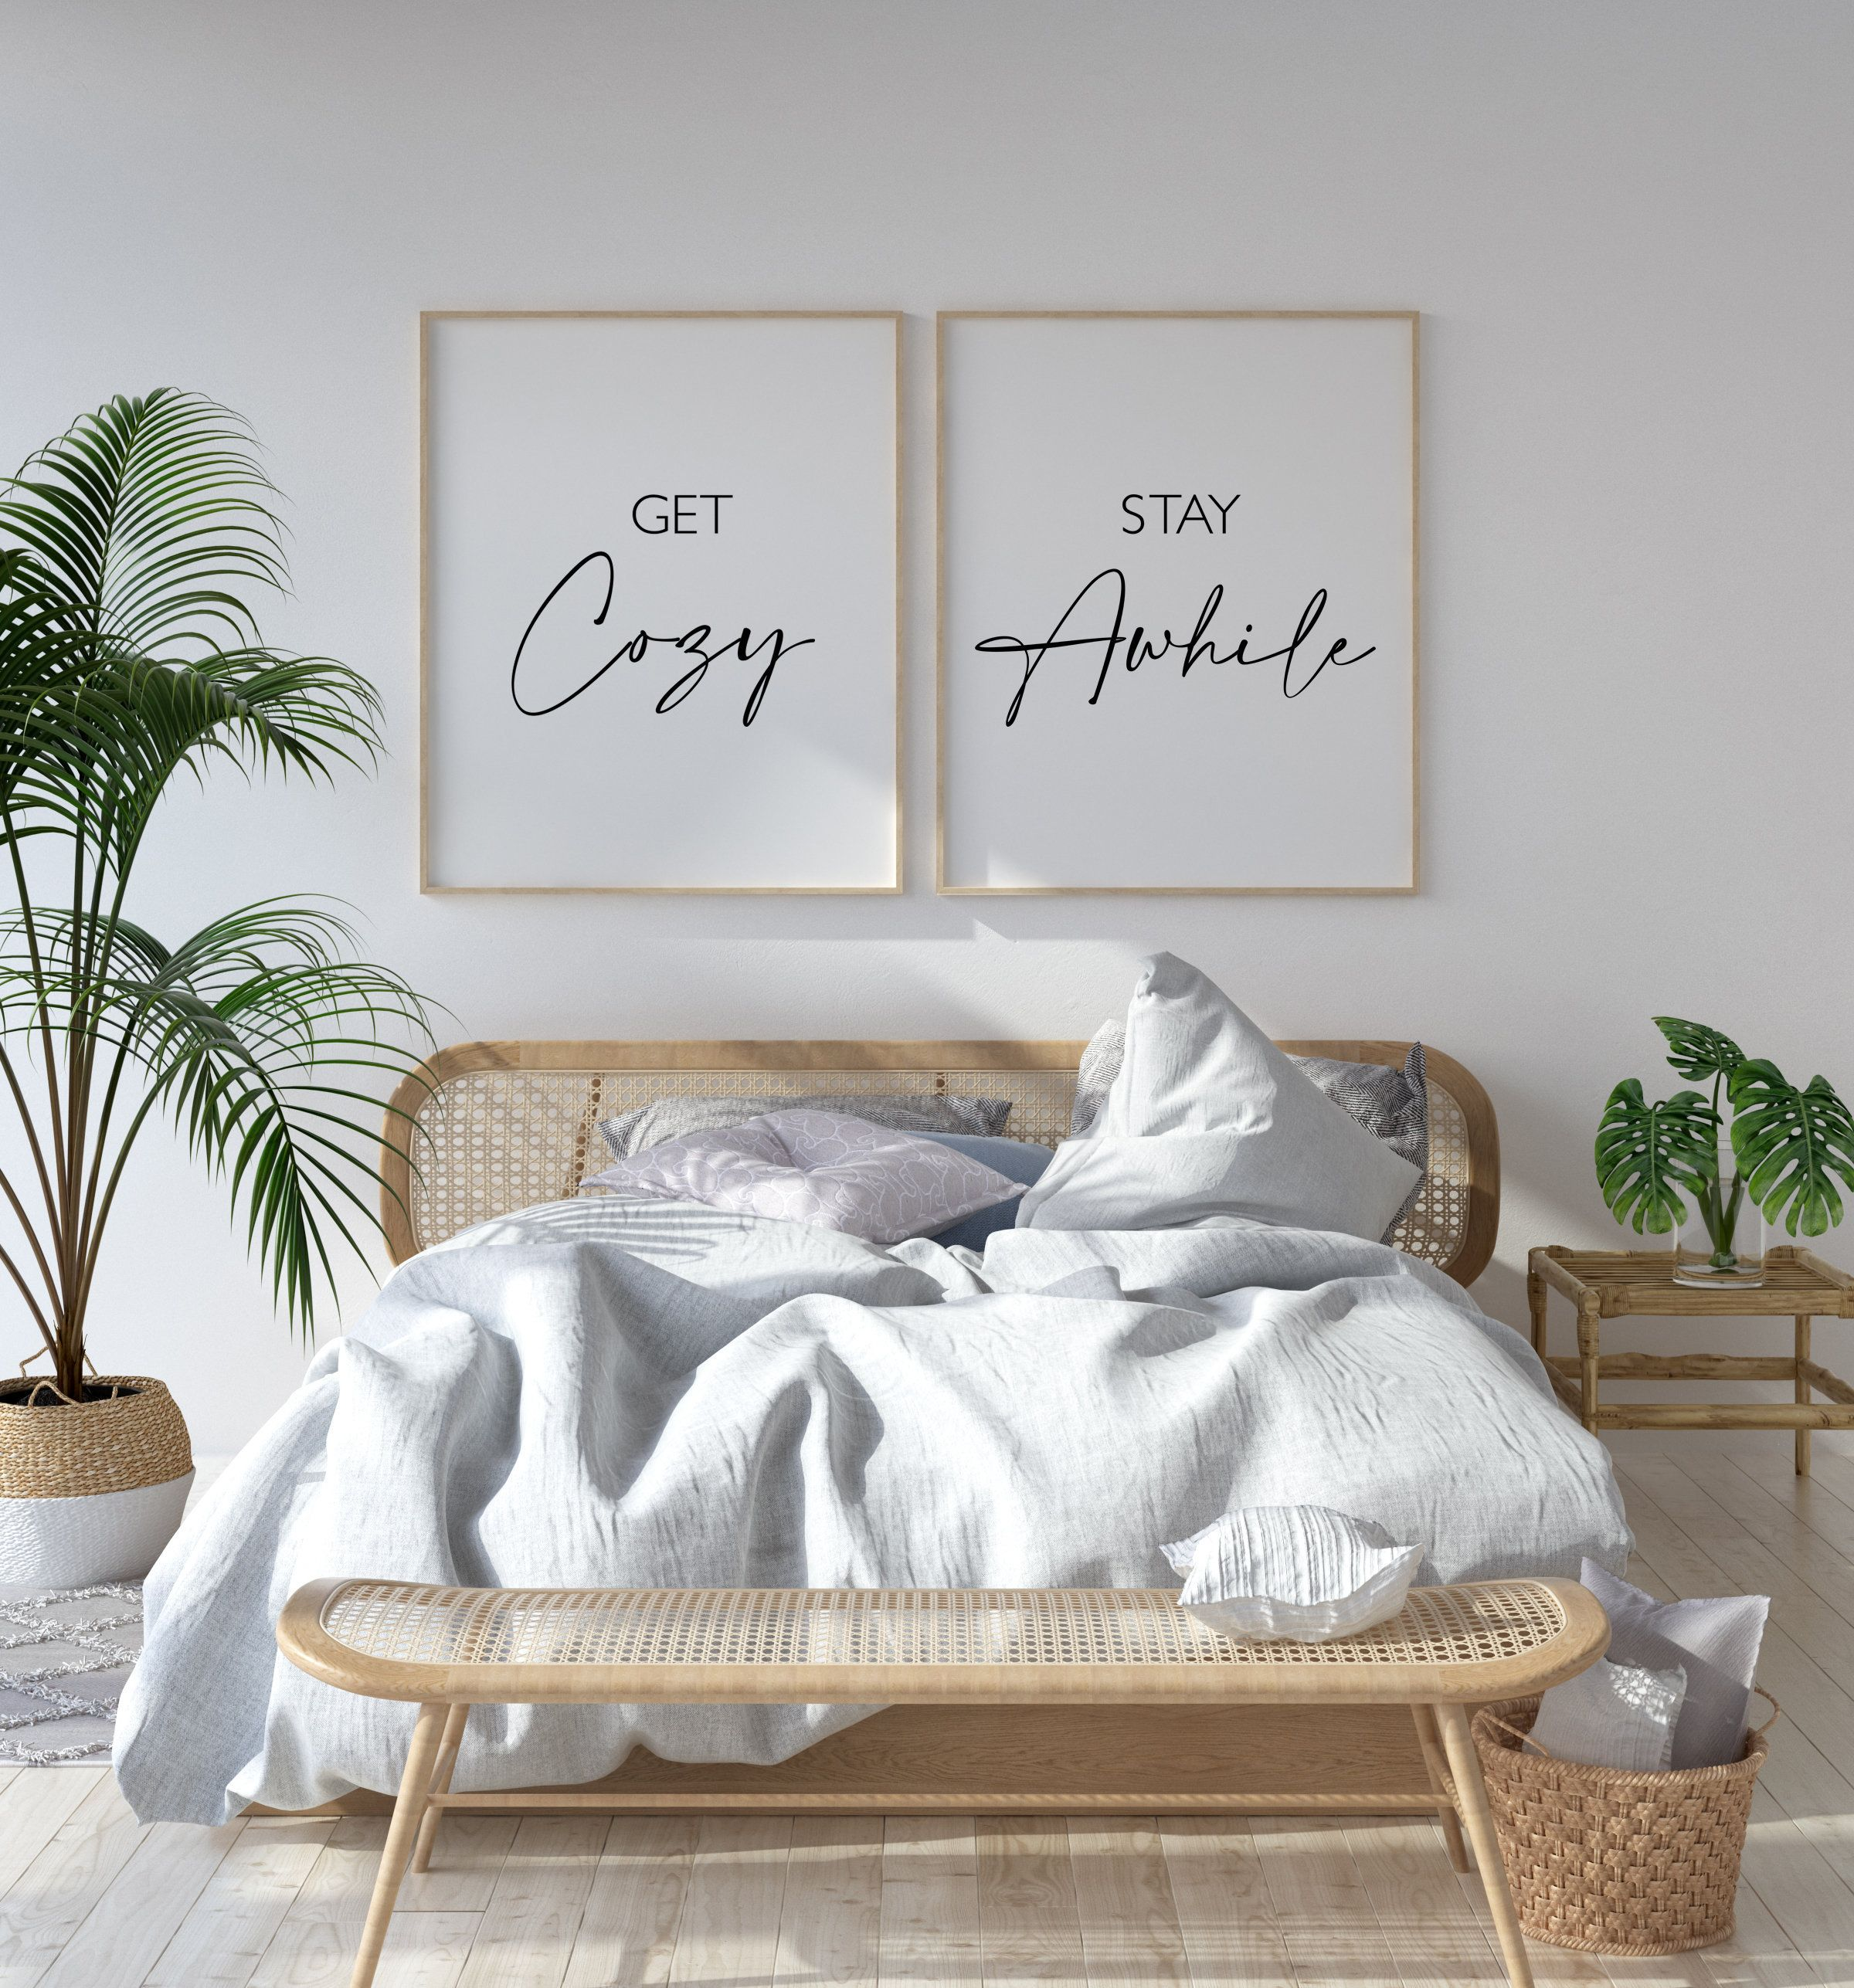 Guest Room Prints, Get Cozy, Stay Awhile Wall Art, Set of Prints Wall Art, Guest Room Quote Print, Guest Bedroom Signs, Stay Awhile Sign